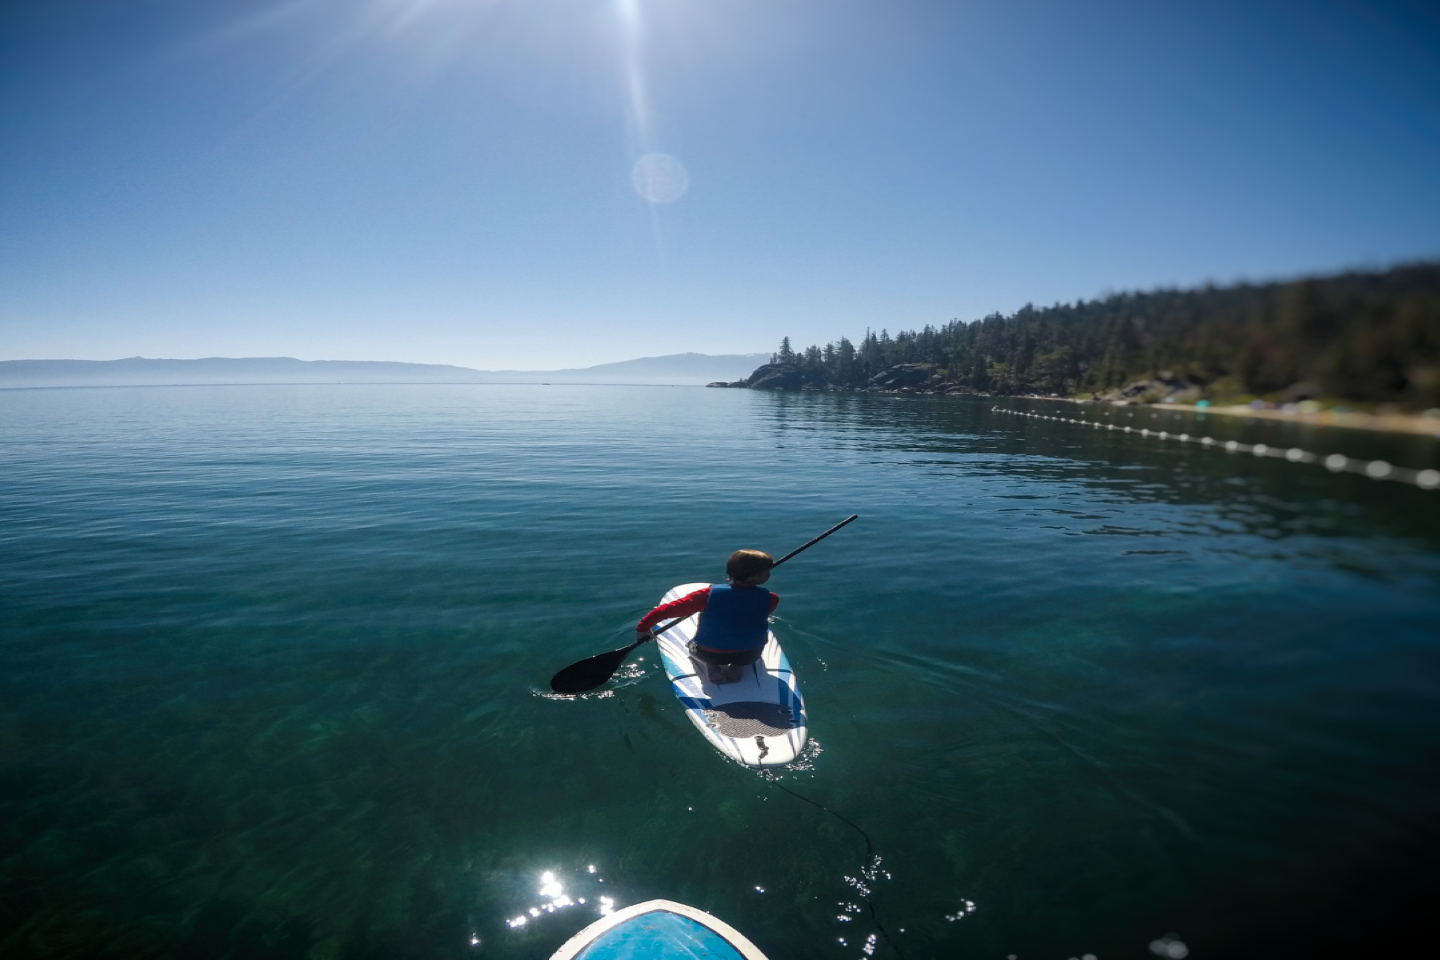 Person stand-up paddleboarding on Lake Tahoe.